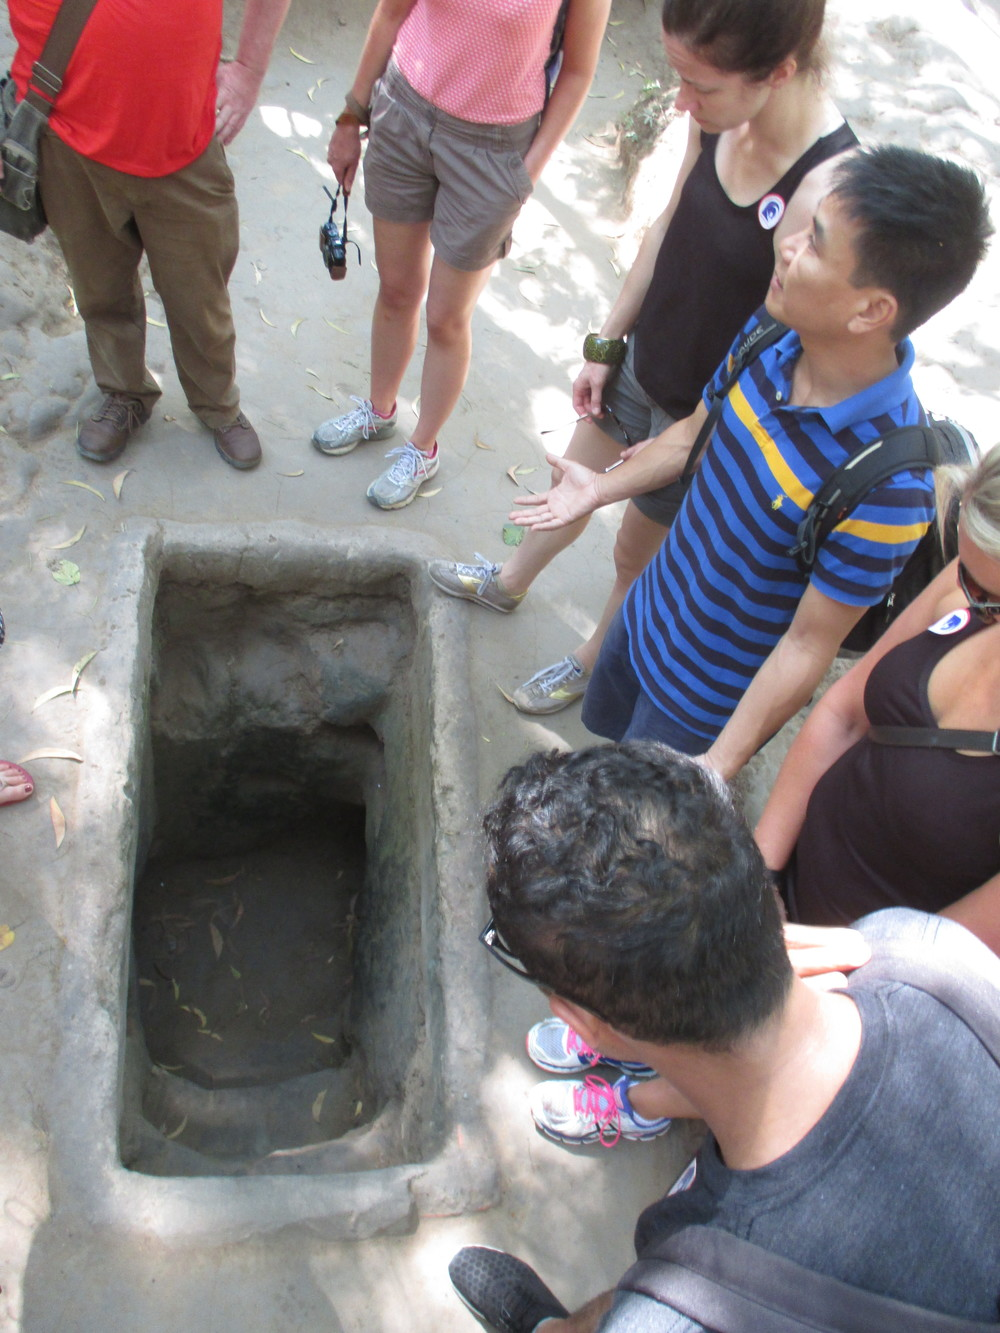 Hoang showing us an entrance to the tunnels